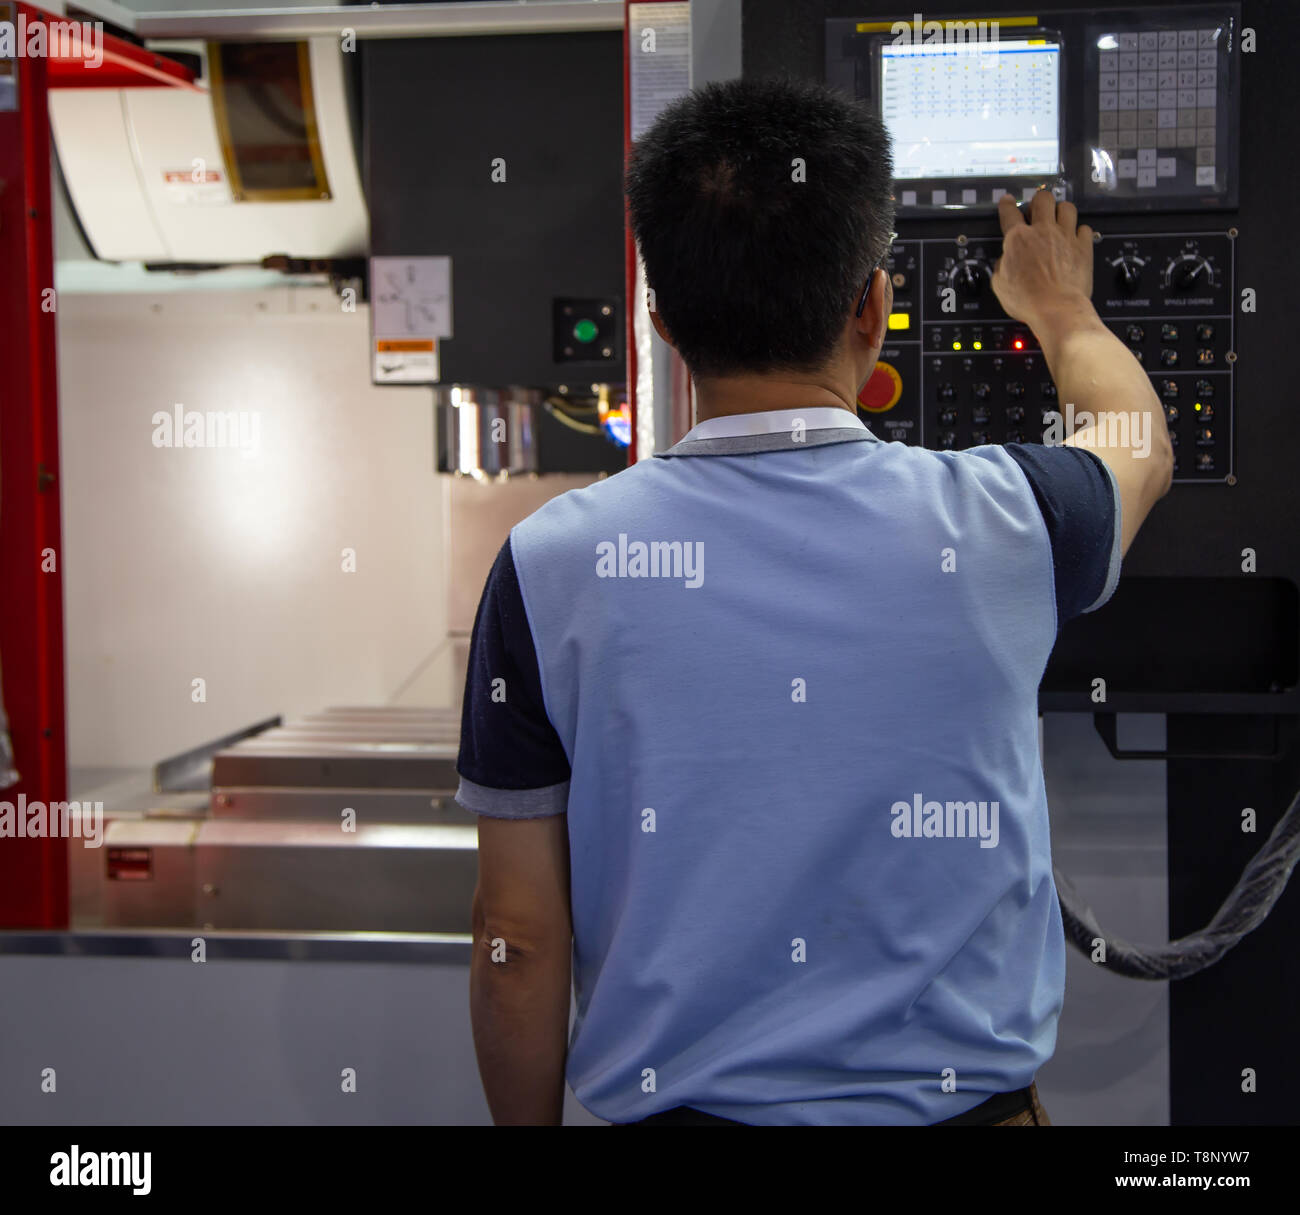 Industrial worker input data to operate cnc milling machine - Stock Image